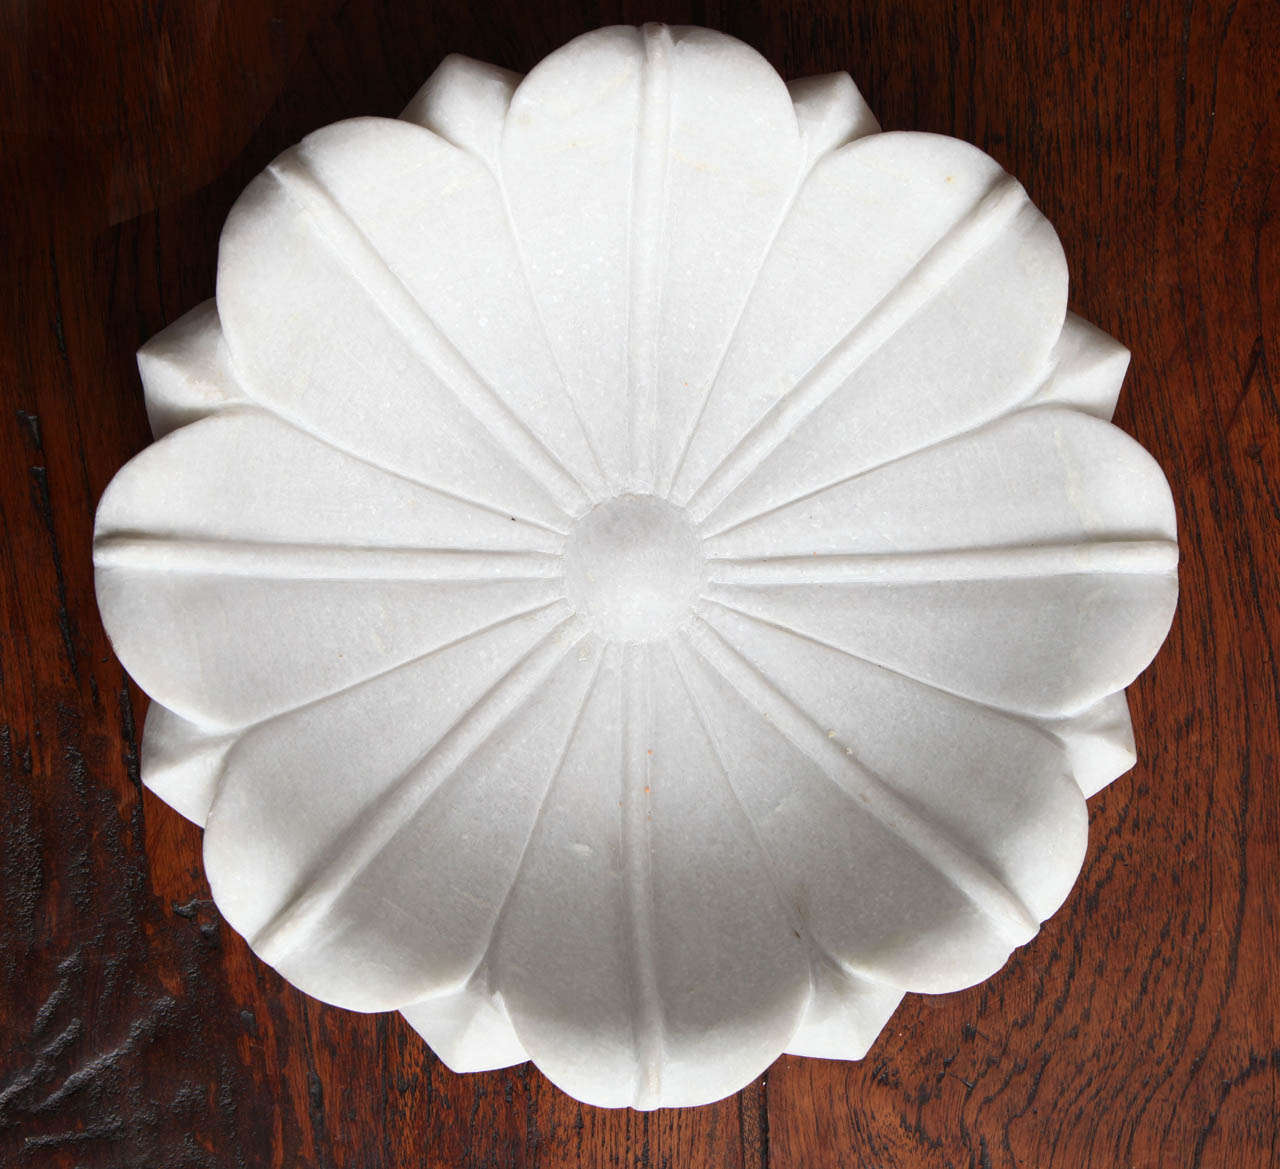 A carved white marble lotus bowl from India.